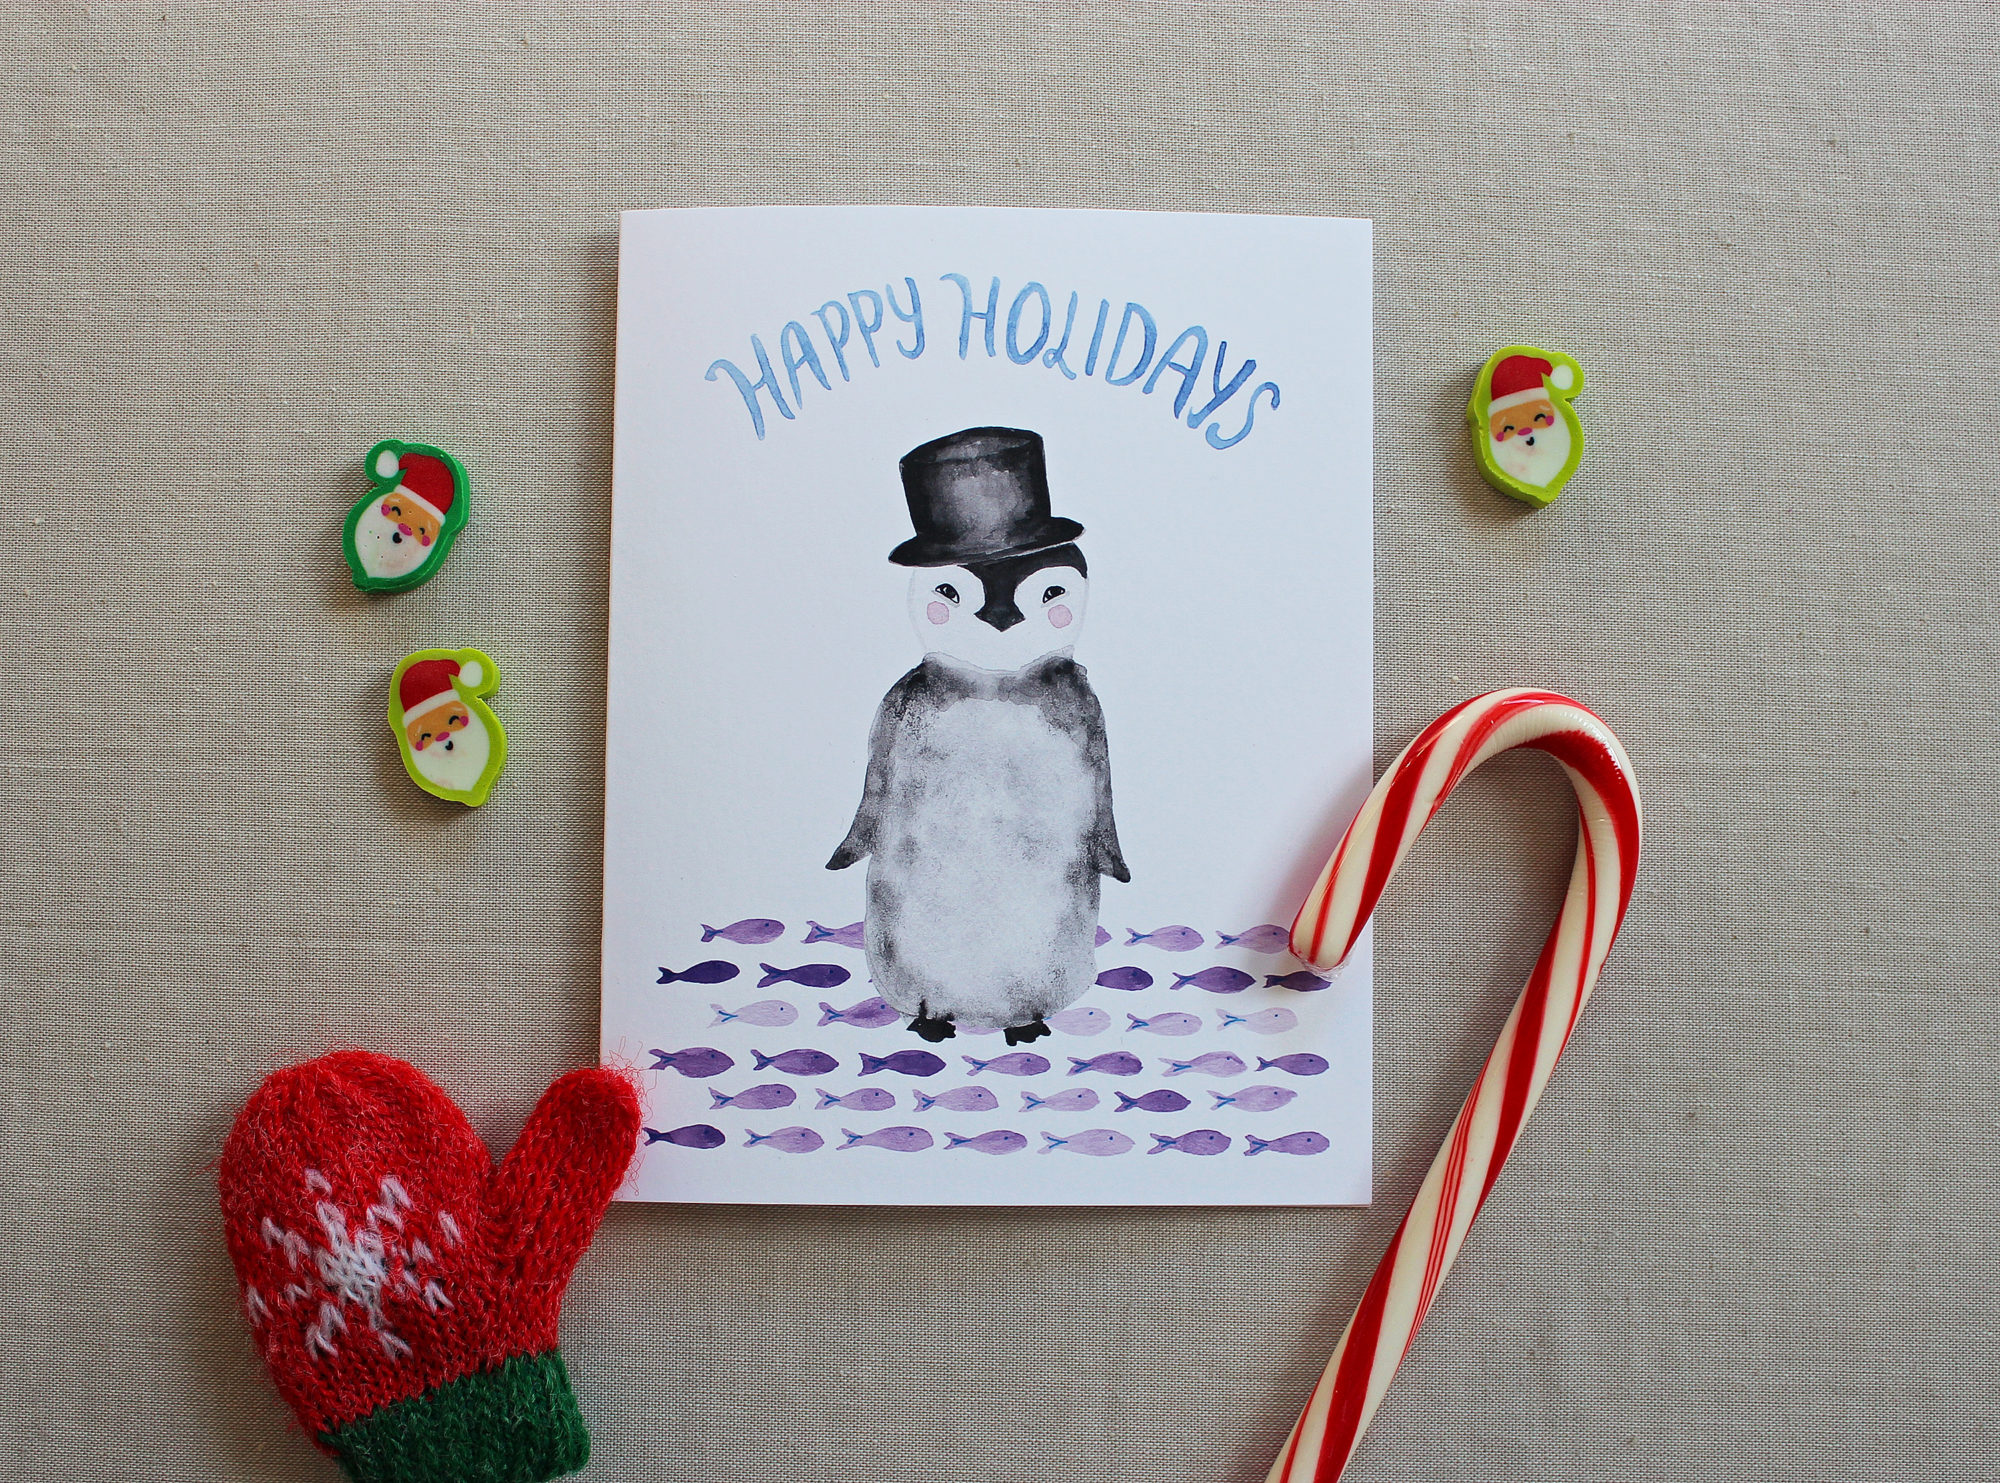 Penguin Christmas Cards and Happy Holidays Cards - Messy Bed Studio